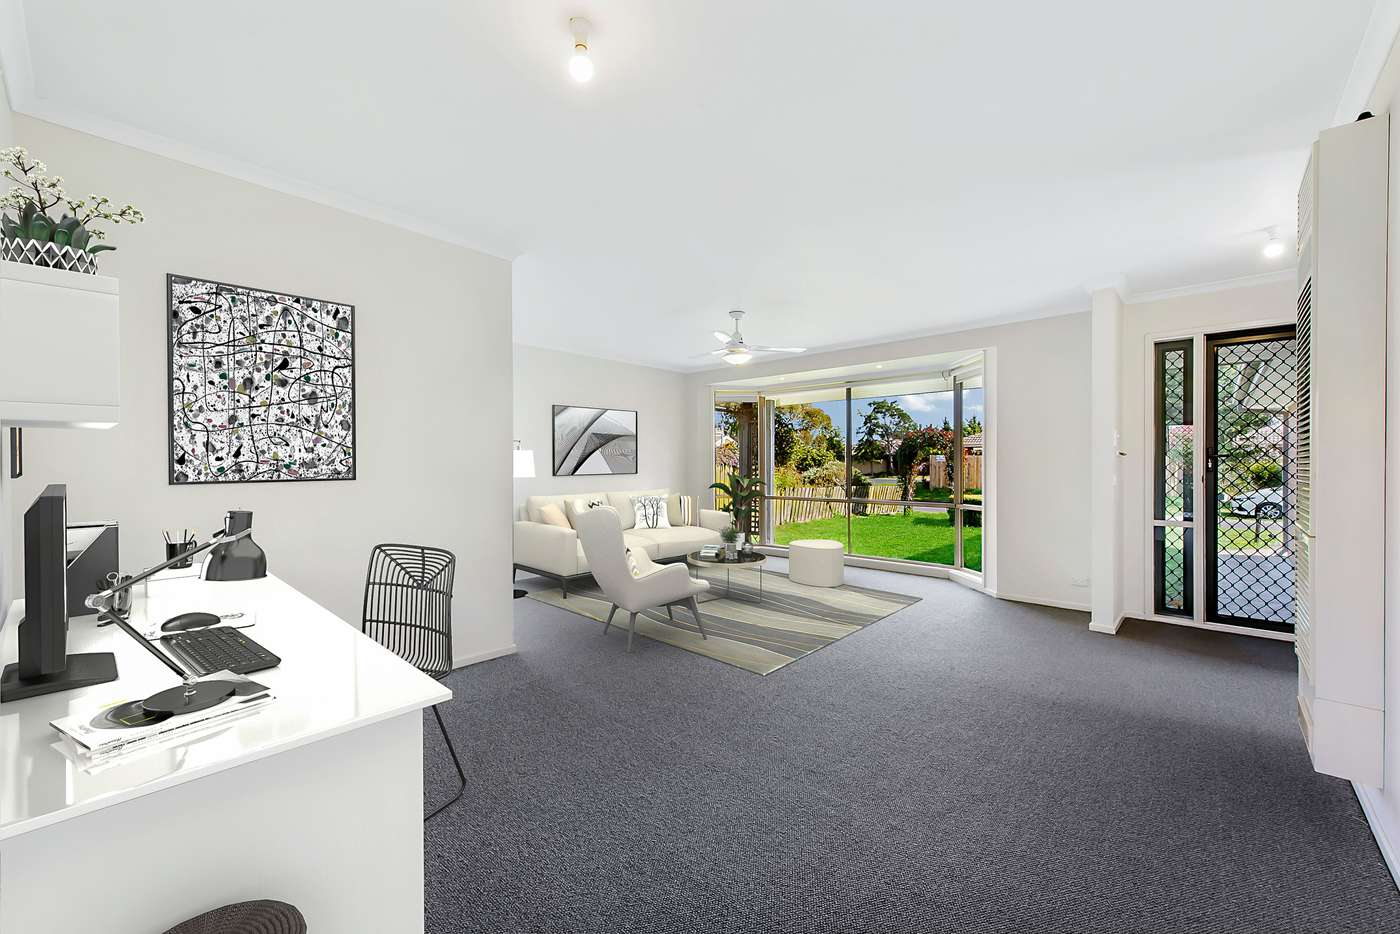 Fifth view of Homely house listing, 12 Cobb Junction, Sydenham VIC 3037